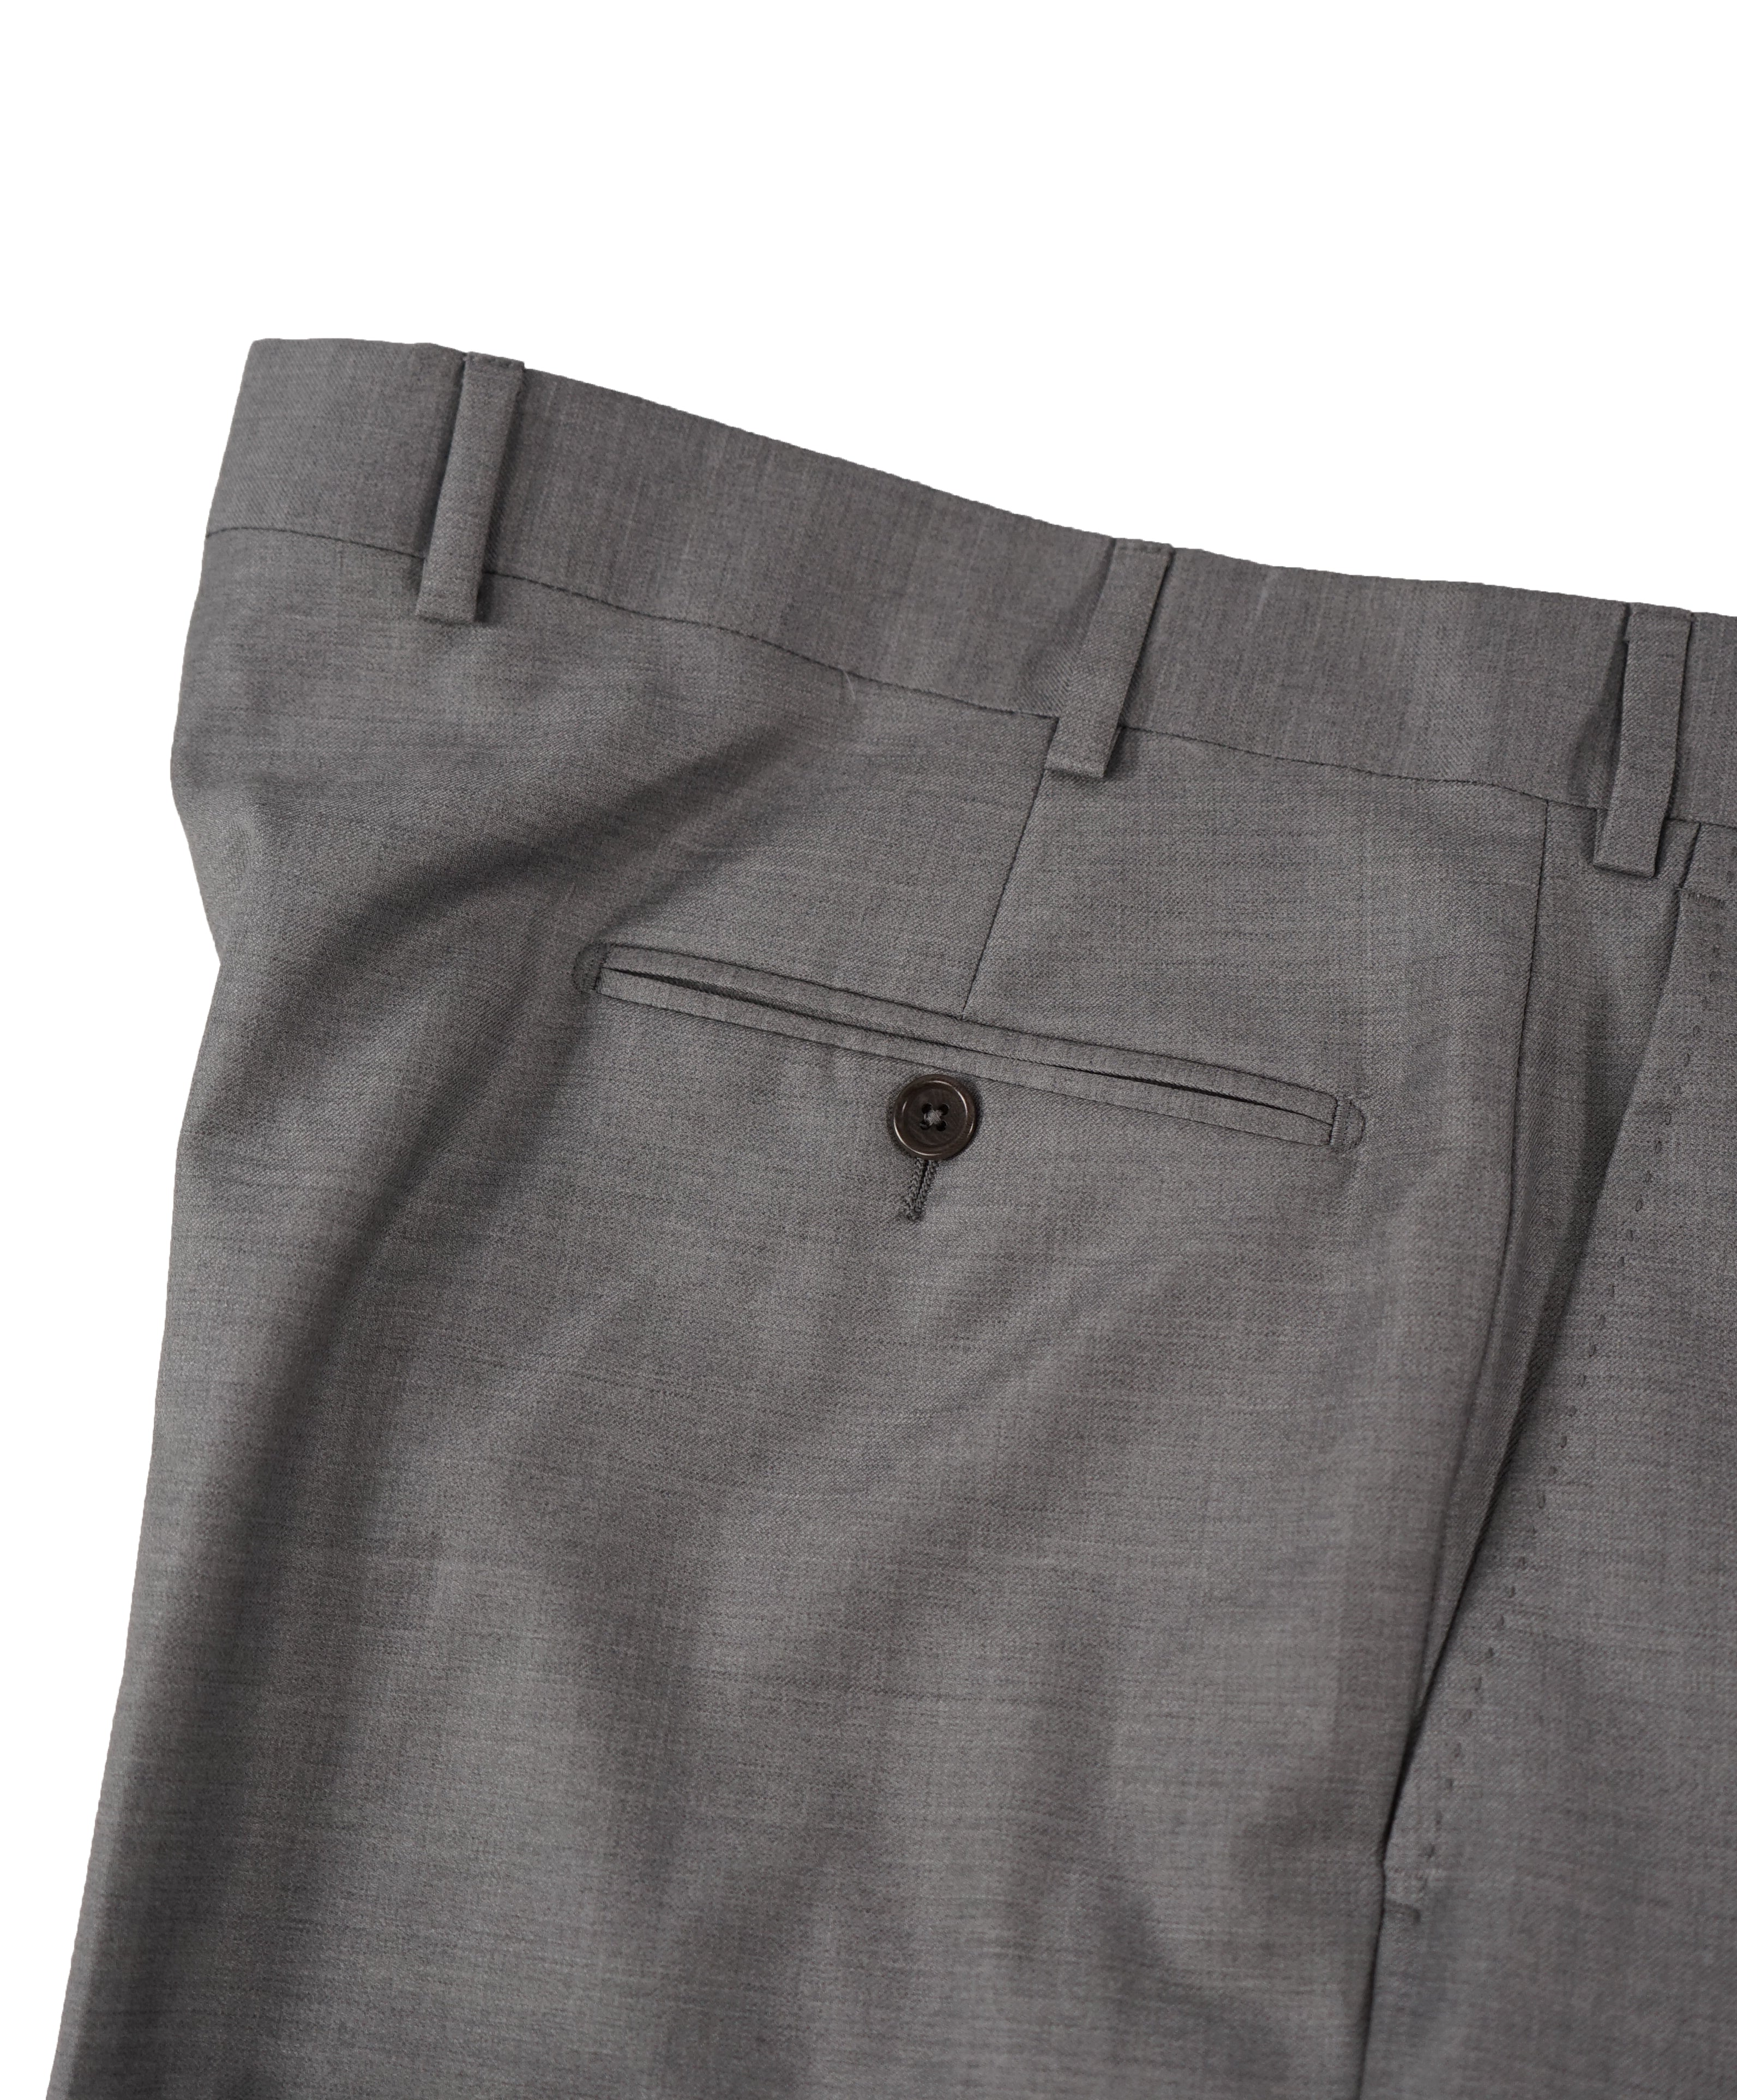 SAKS FIFTH AVE - Gray Wool MADE IN ITALY Flat Front Dress Pants - 38W